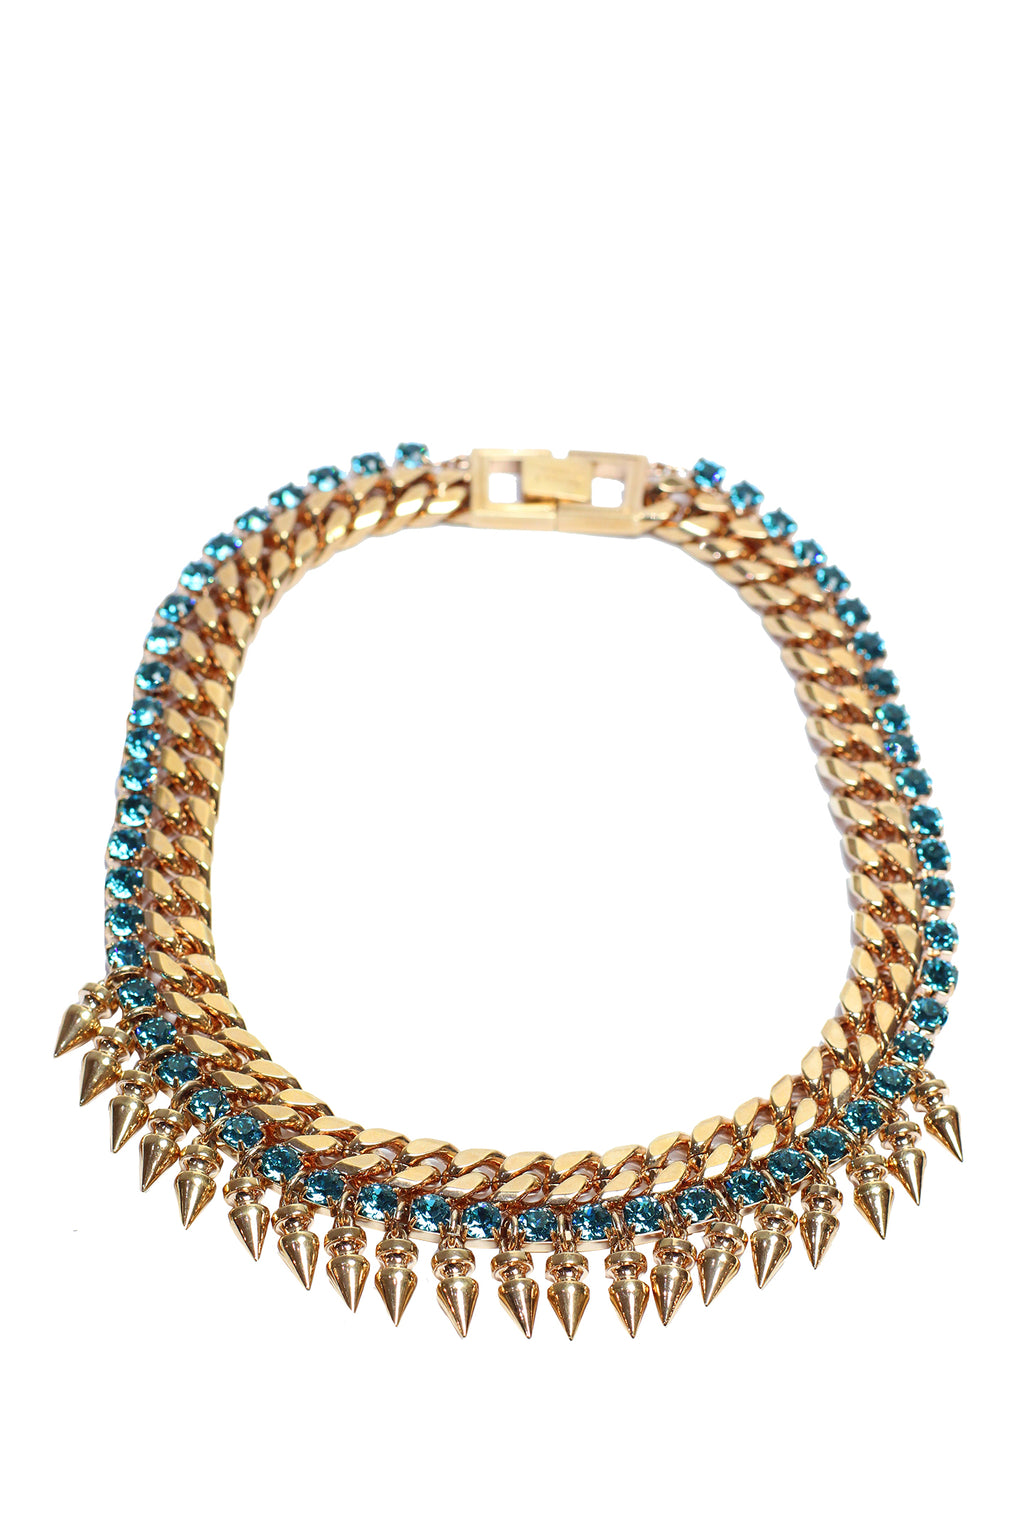 Mawi - Spiked necklace with crystals-rose-gold plated